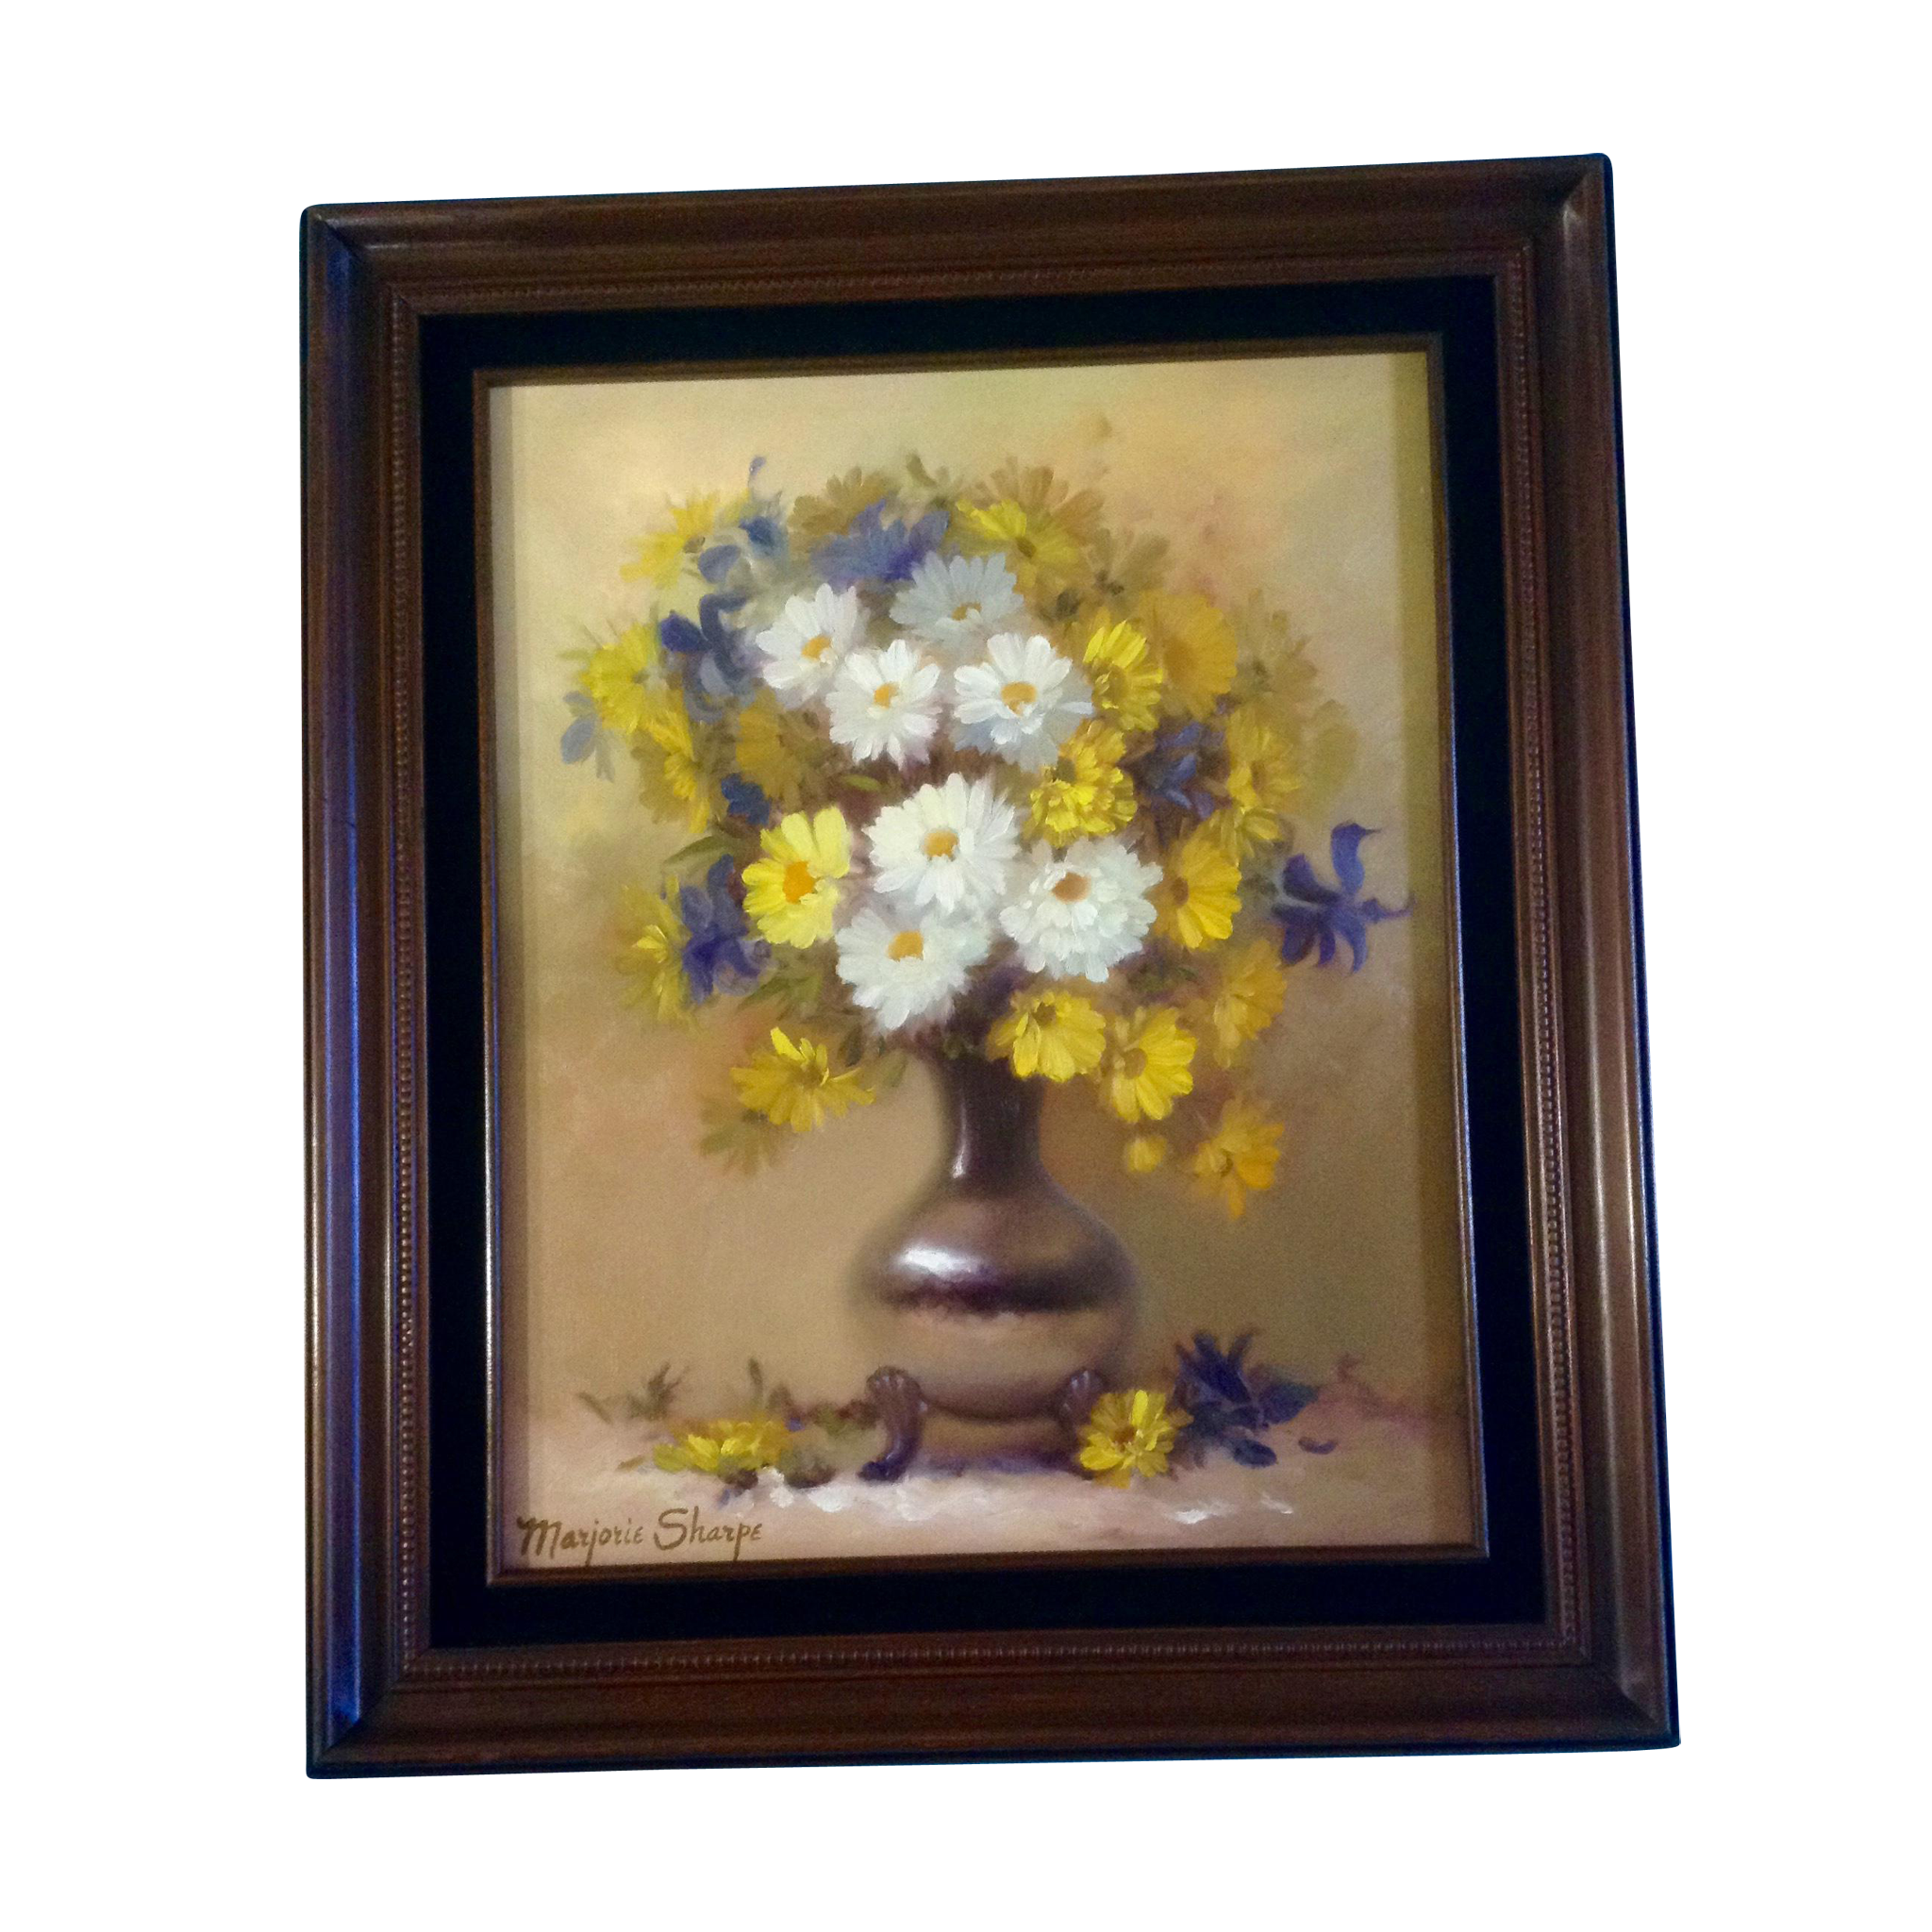 Marjorie sharpe oil painting on canvas listed san francisco marjorie sharpe oil painting on canvas listed san francisco artist yellow and white daisies reviewsmspy